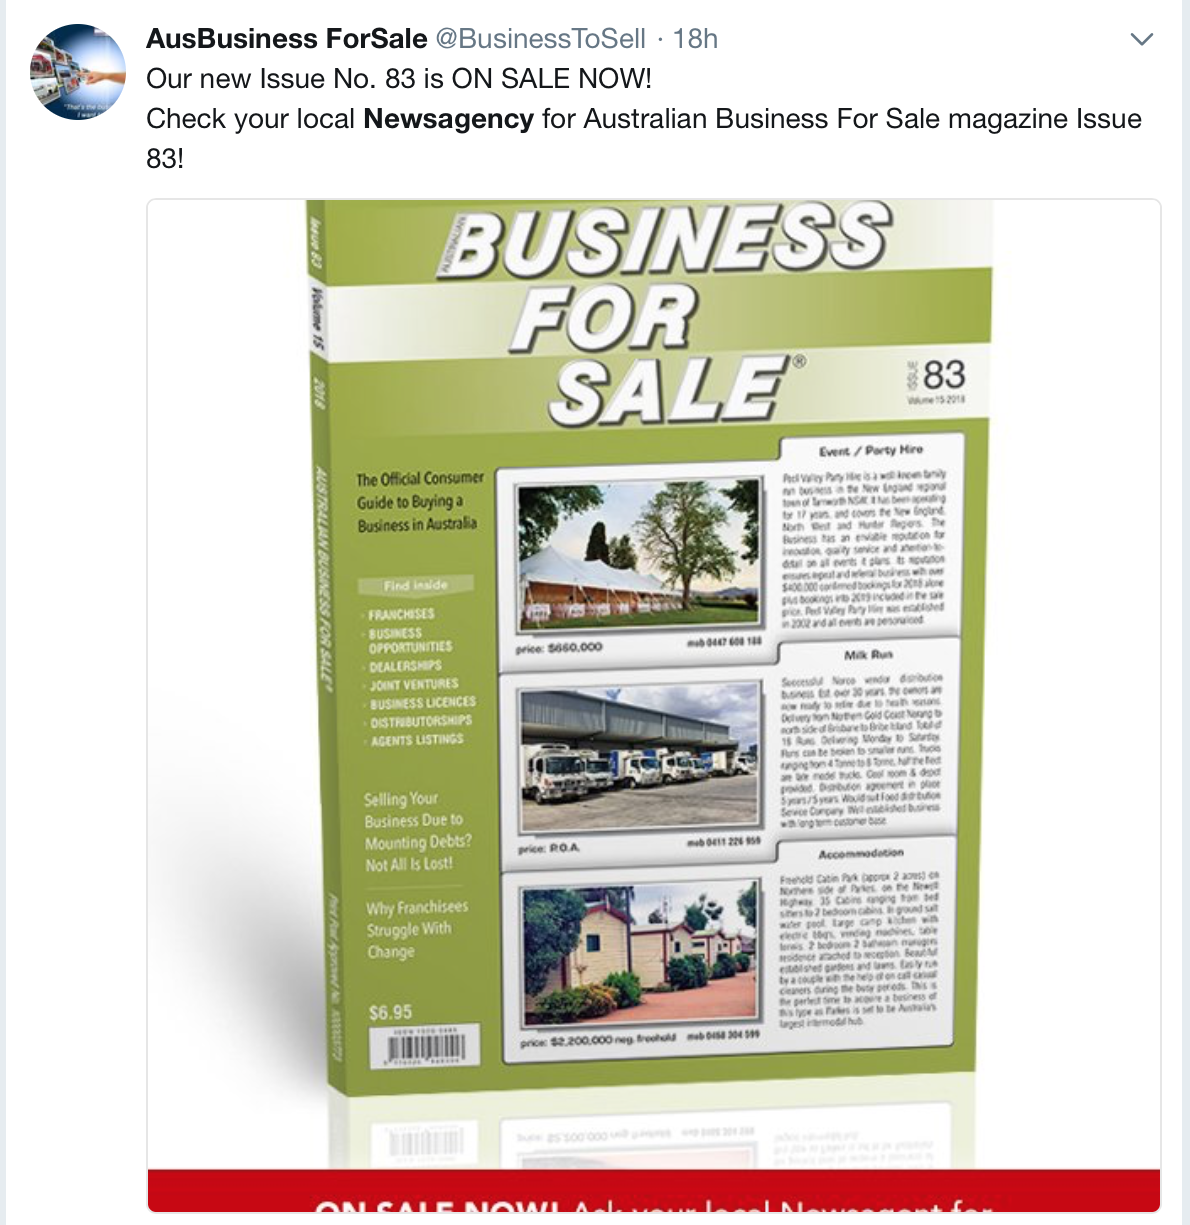 Australian Business For Sale magazine promotes newsagents on